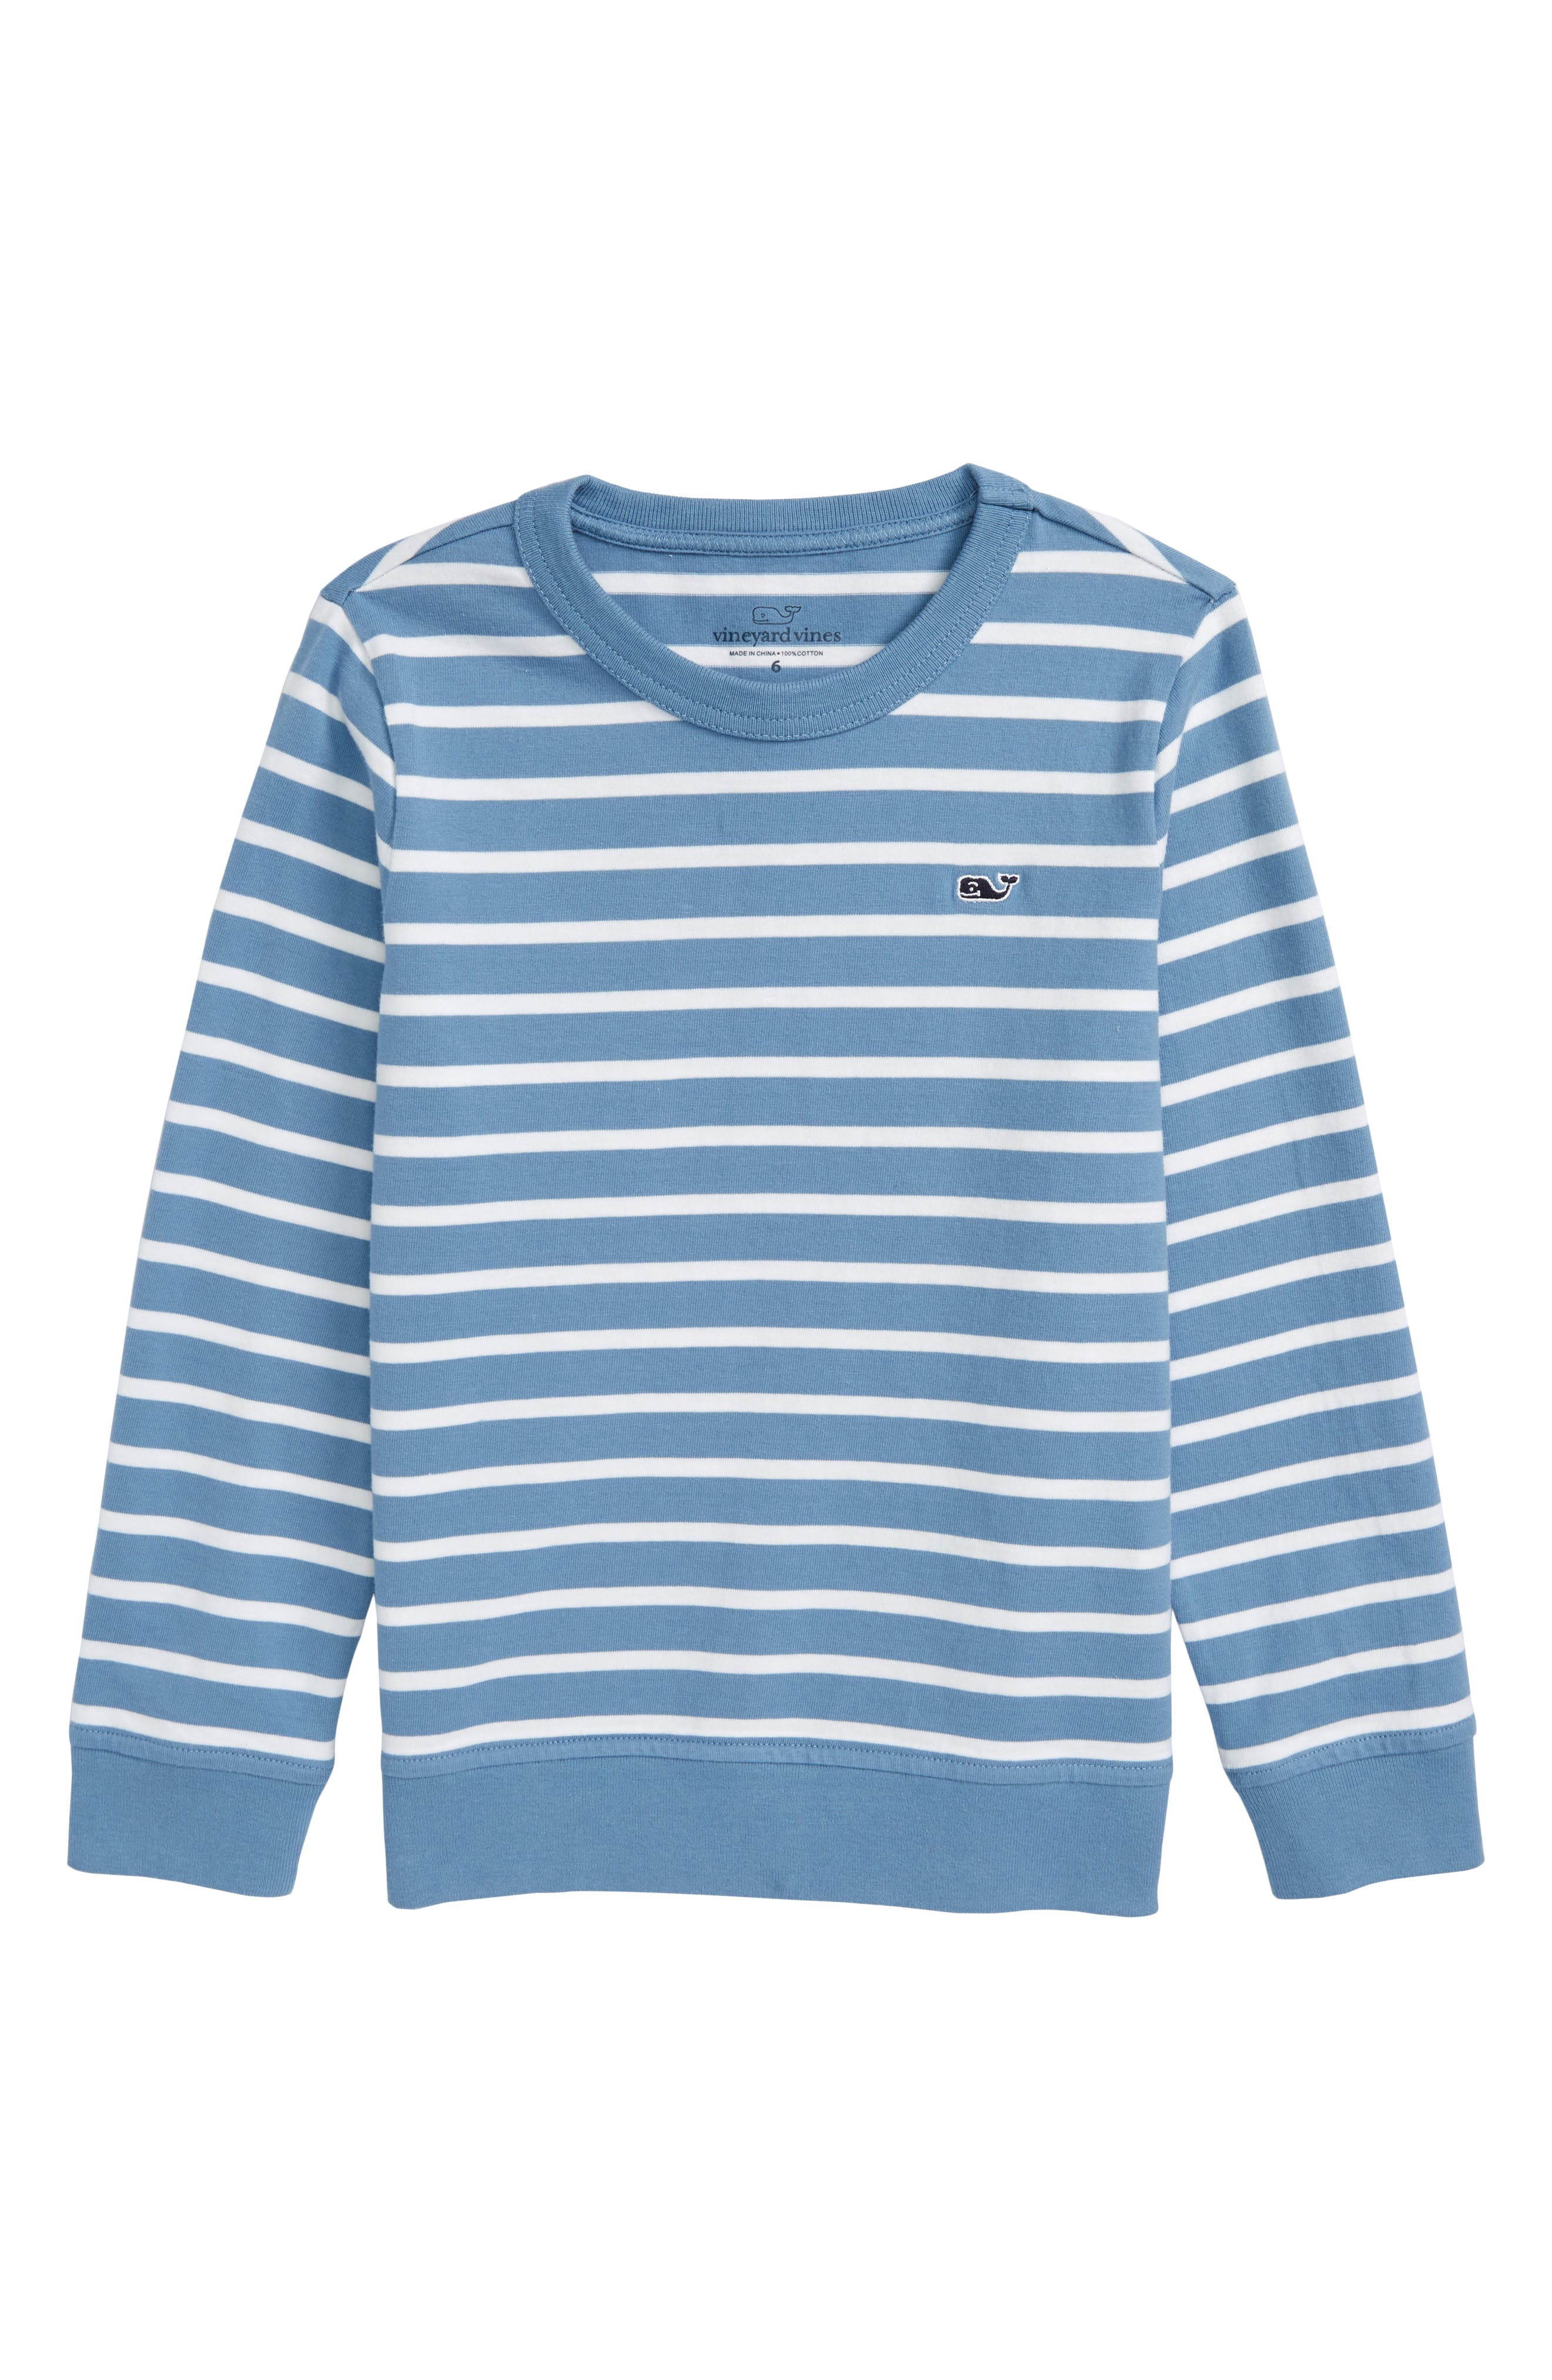 Stripe Crewneck Sweater,                             Main thumbnail 1, color,                             477